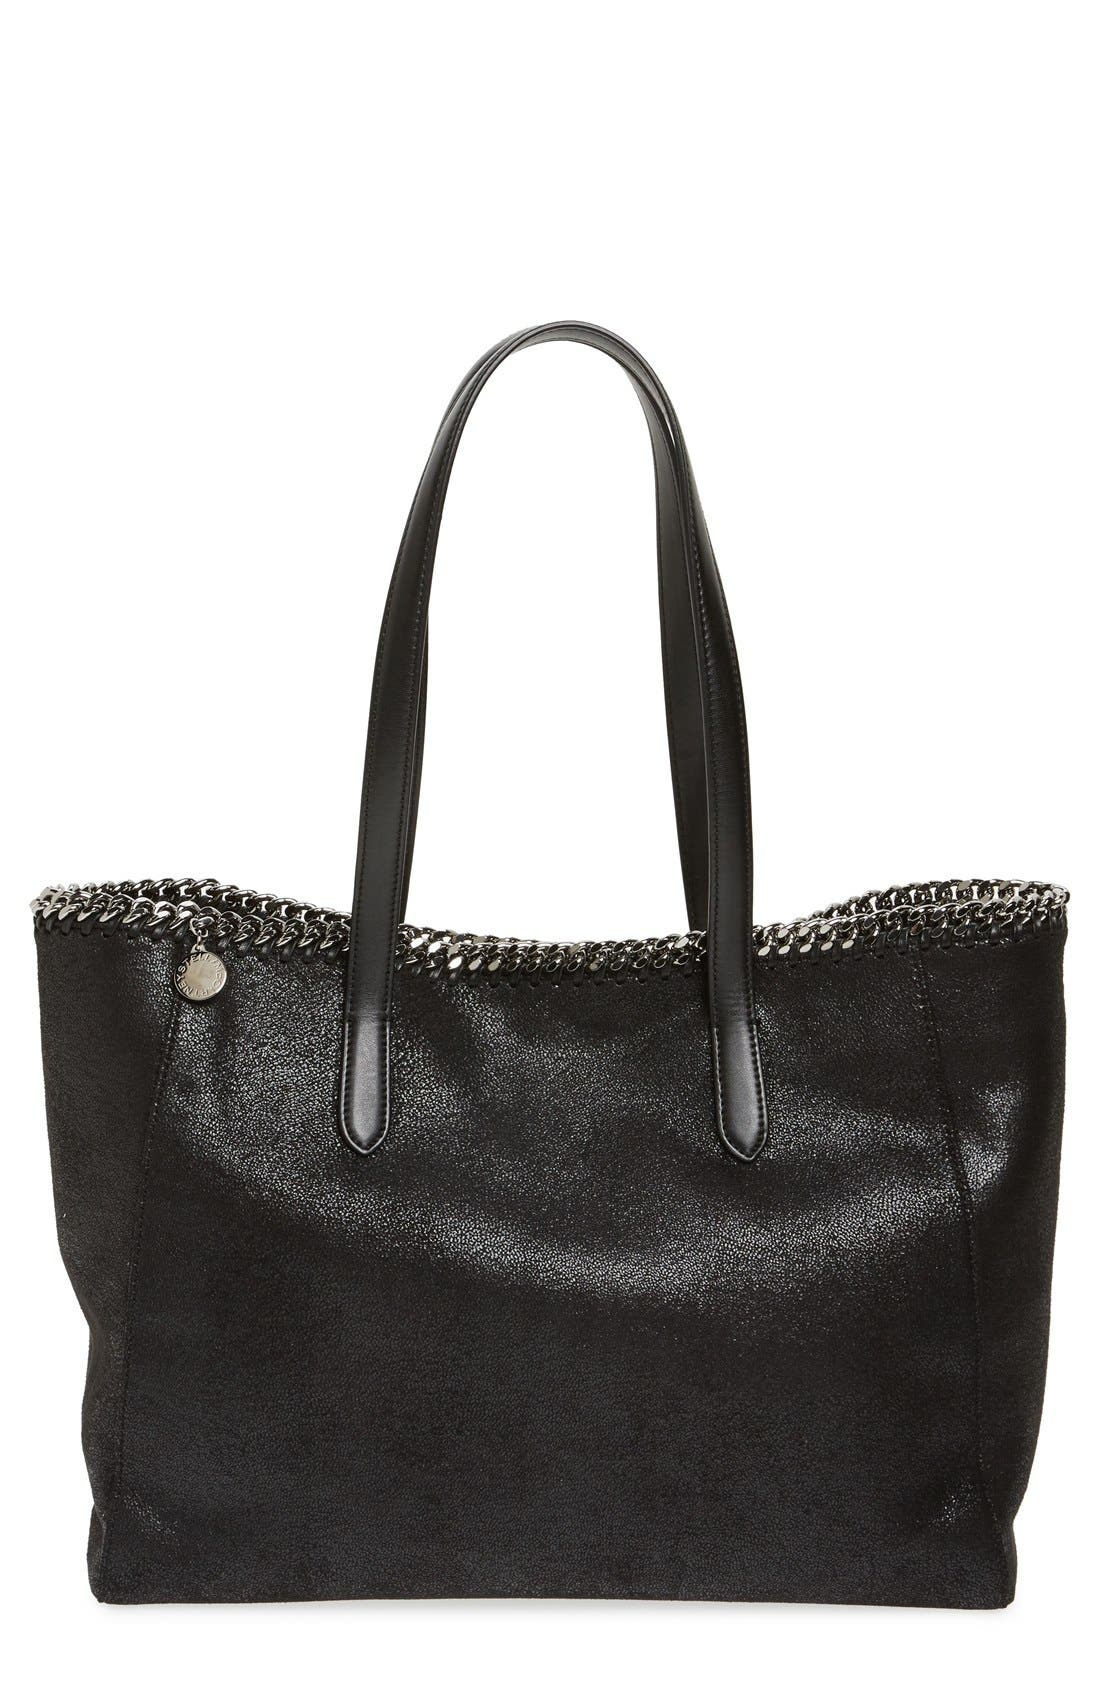 'Falabella - Shaggy Deer' Faux Leather Tote,                         Main,                         color, 001